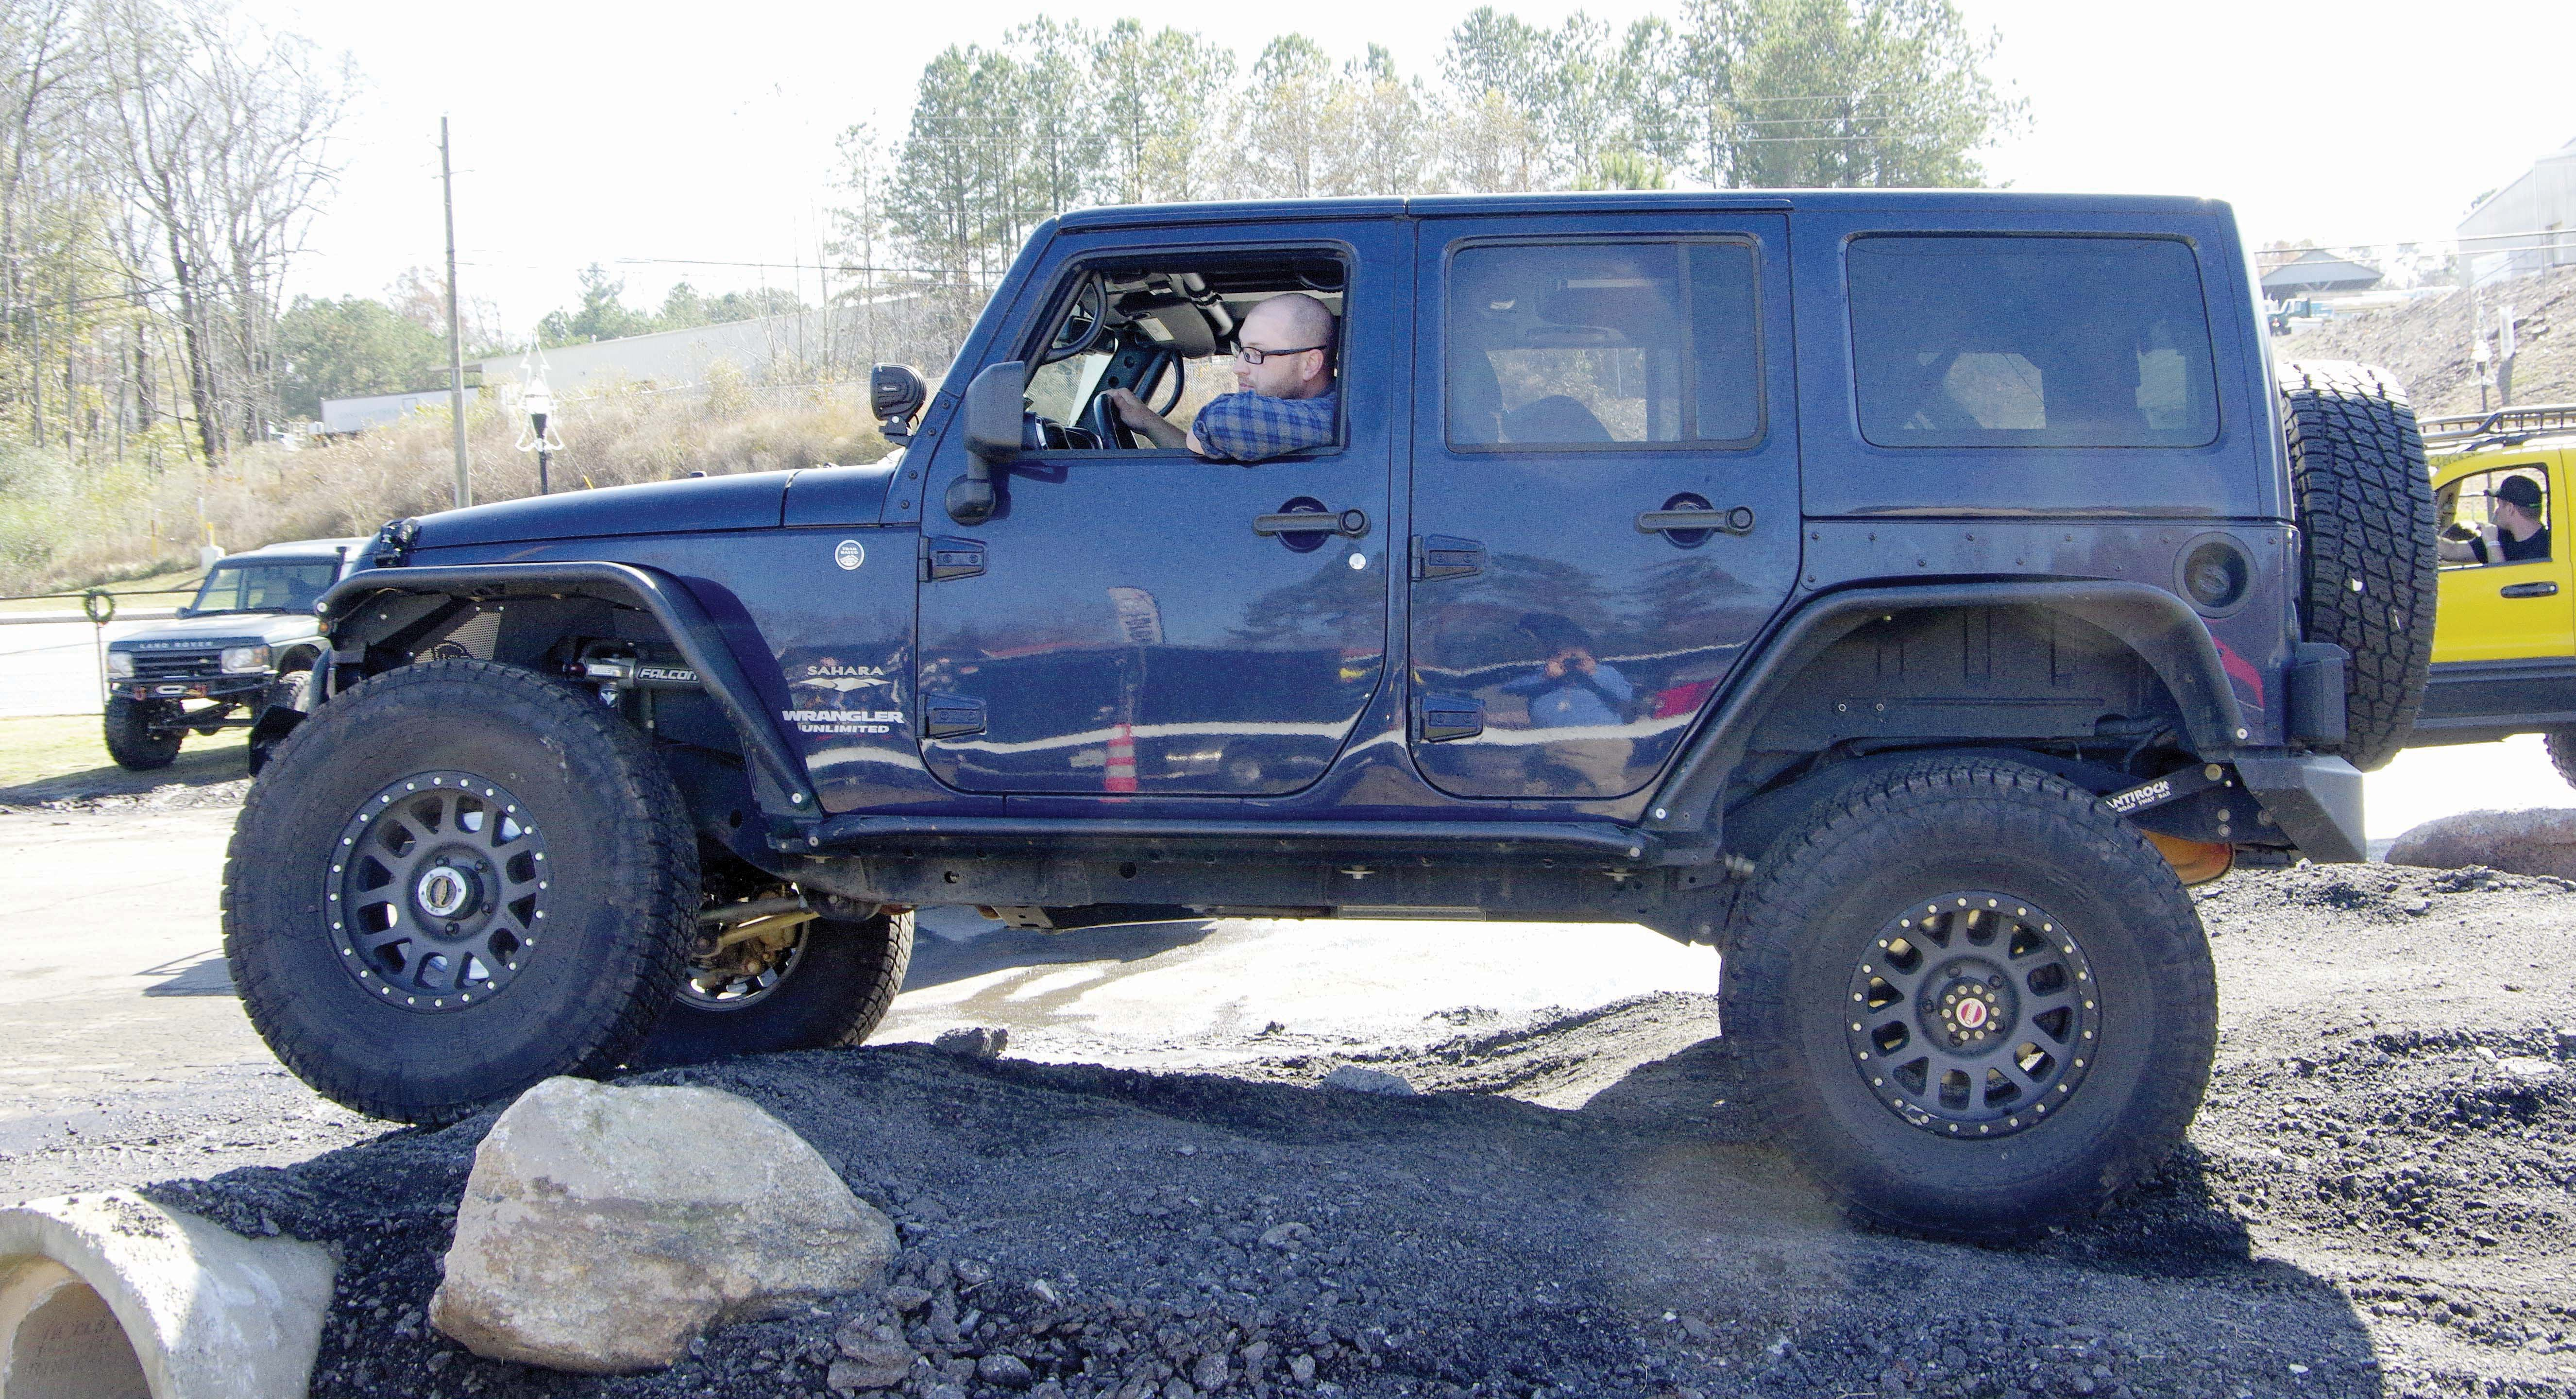 Many Jeeps ran the obstacle course.jpg